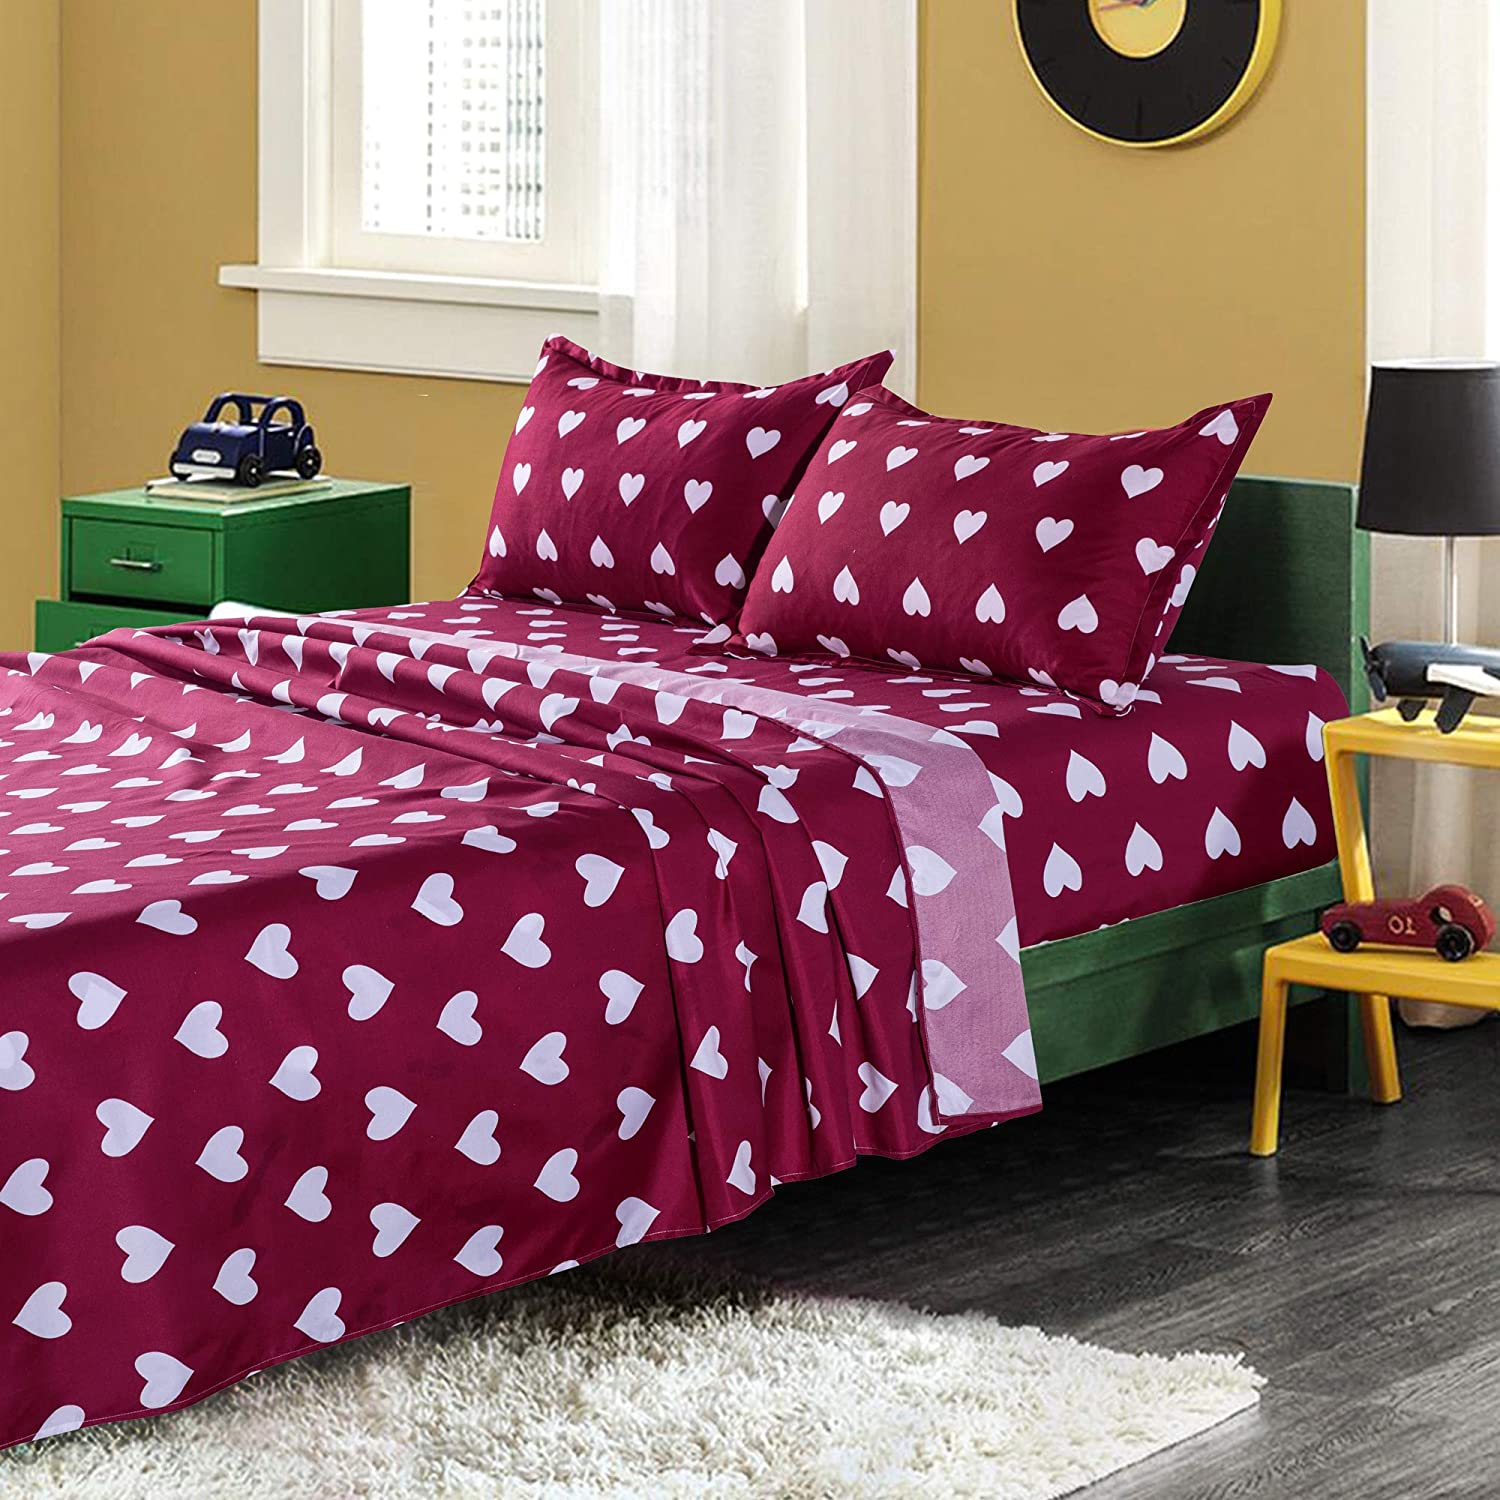 KFZ Full Bed Sheets Set –4Piece with 1 Fitted Sheet, 1 Flat Sheet, 2 Pillowcases –Soft Egyptian Quality Brushed Microfiber Bedding Set – Red Color Love Themed Heart-Shaped Printed Bed Set